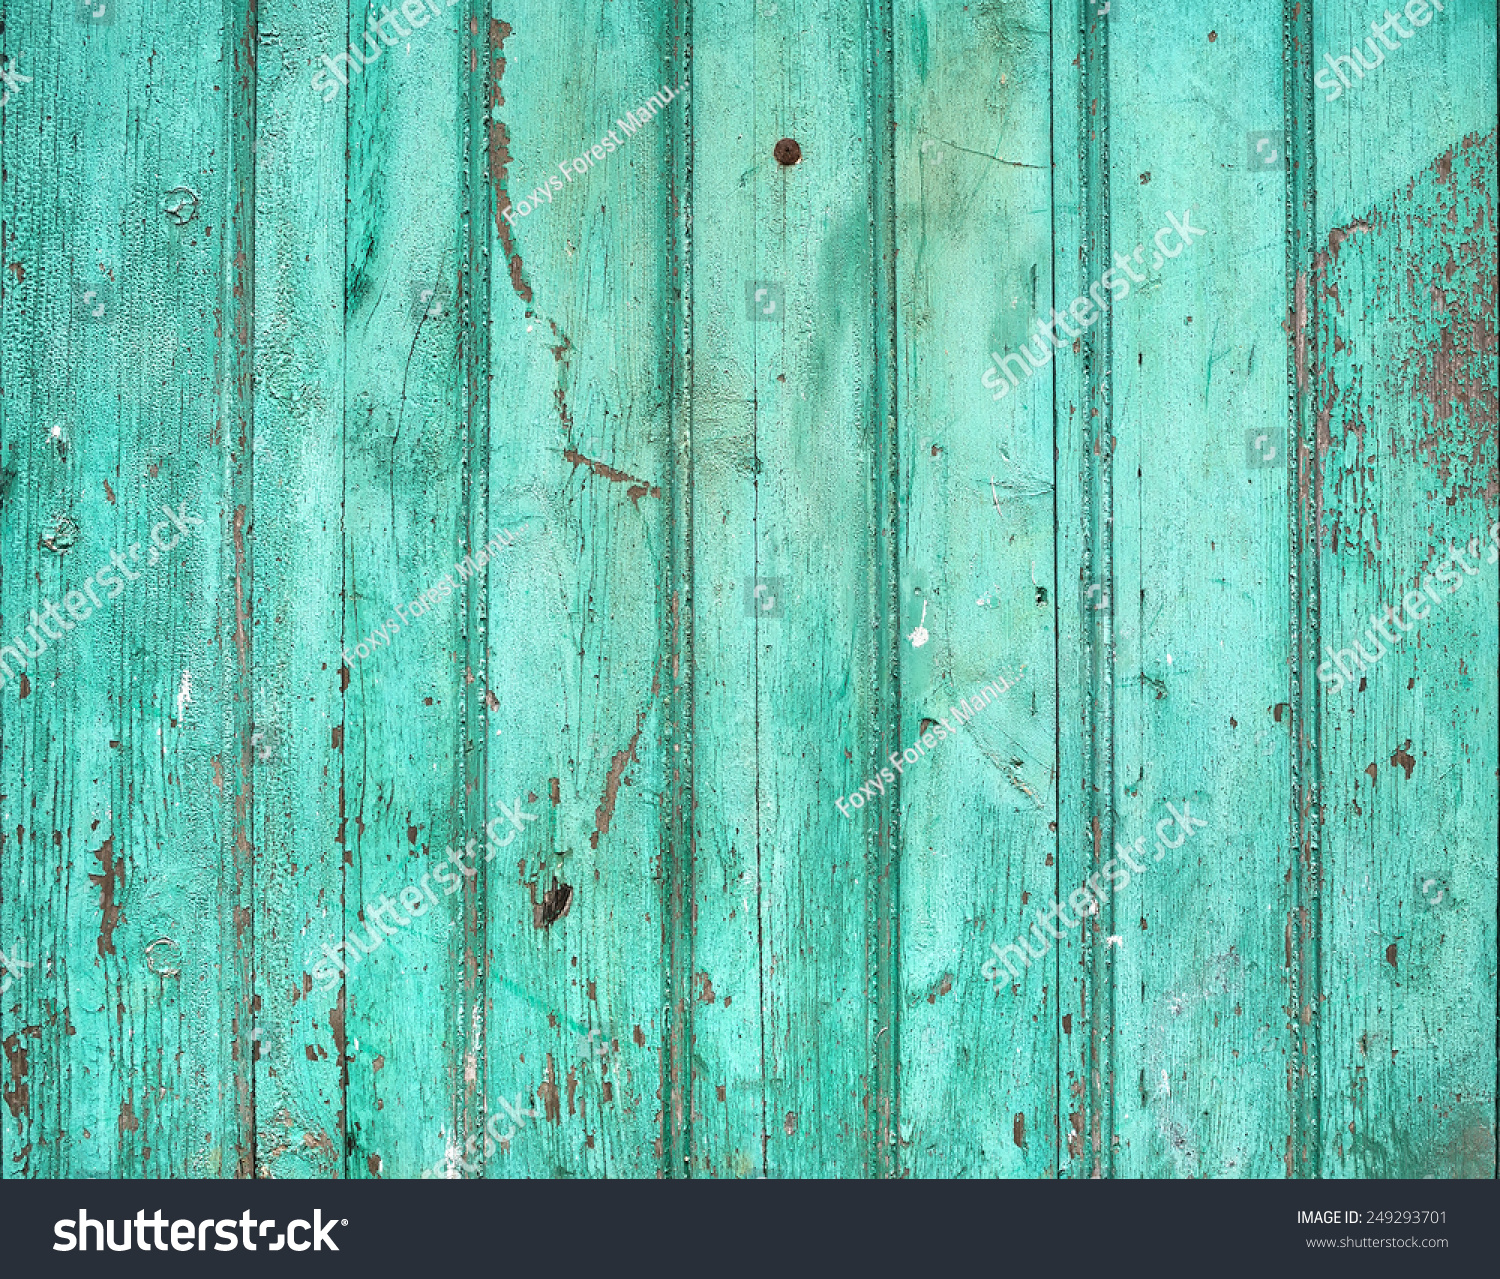 Old Rustic Painted Cracky Green Turquoise Wooden Texture Or Background